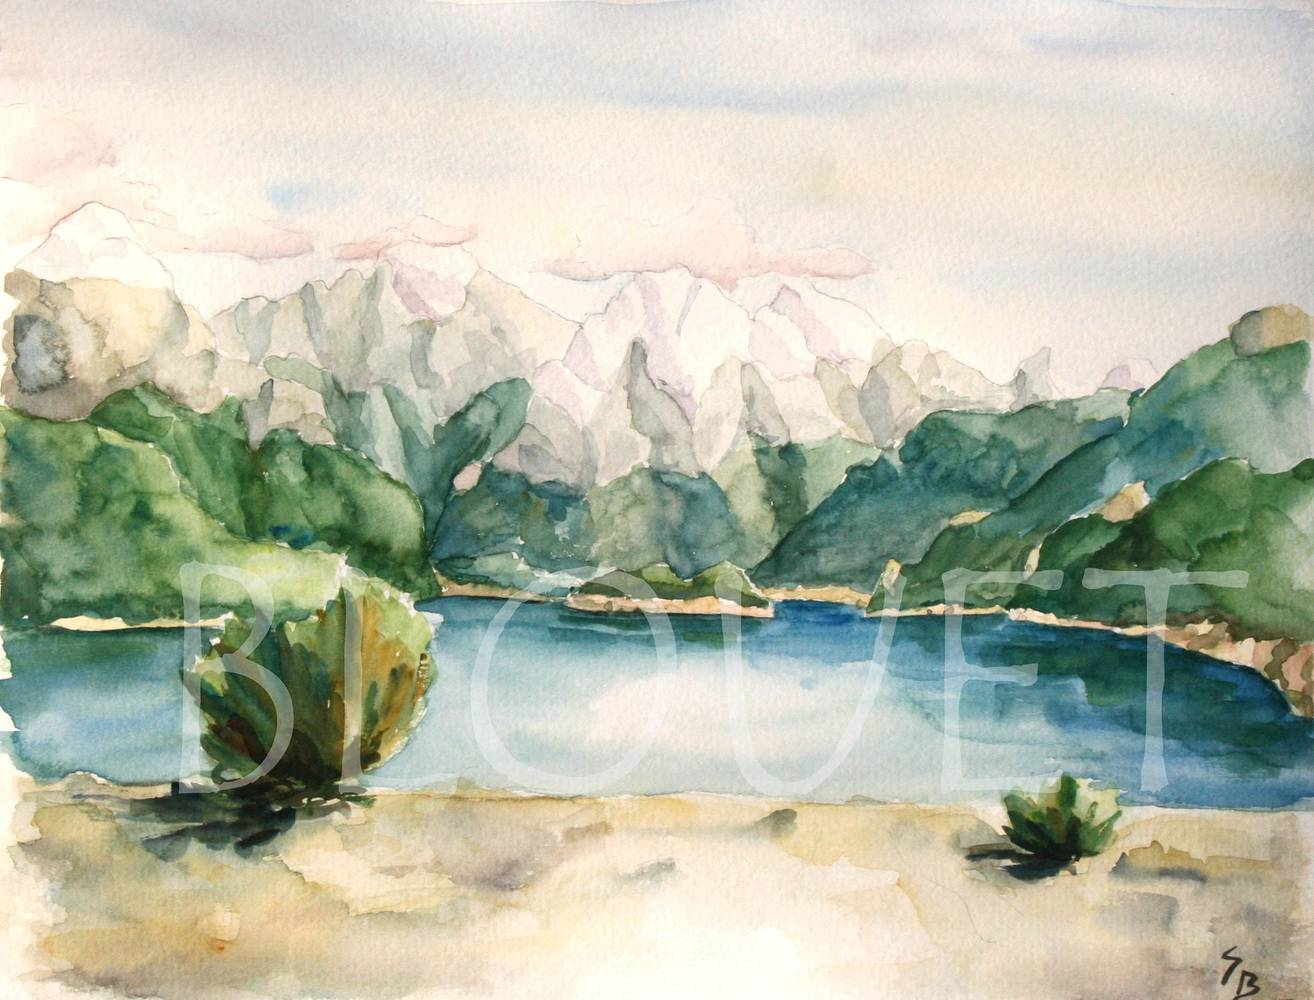 Watercolor Lac de tous les Saints by Sophie Dassonville